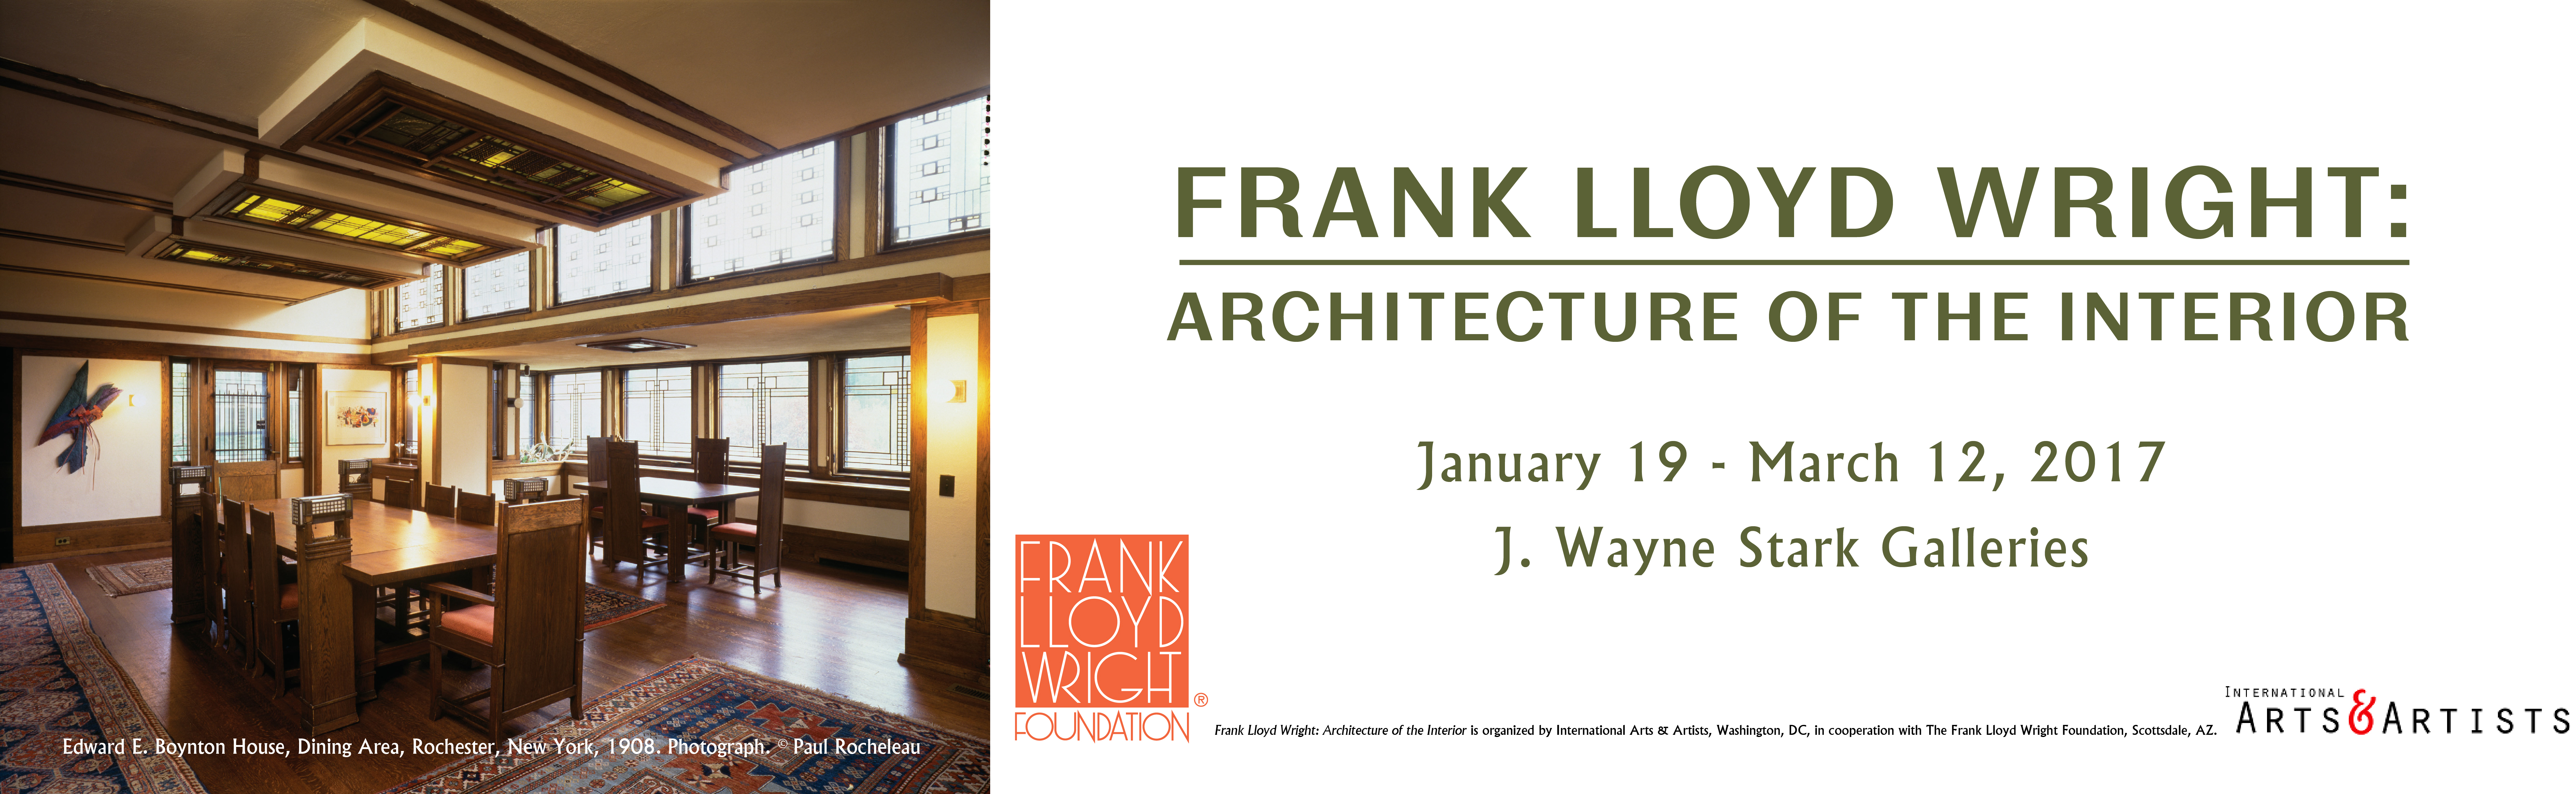 Frank Lloyd Wright Architecture Of The Interior UART